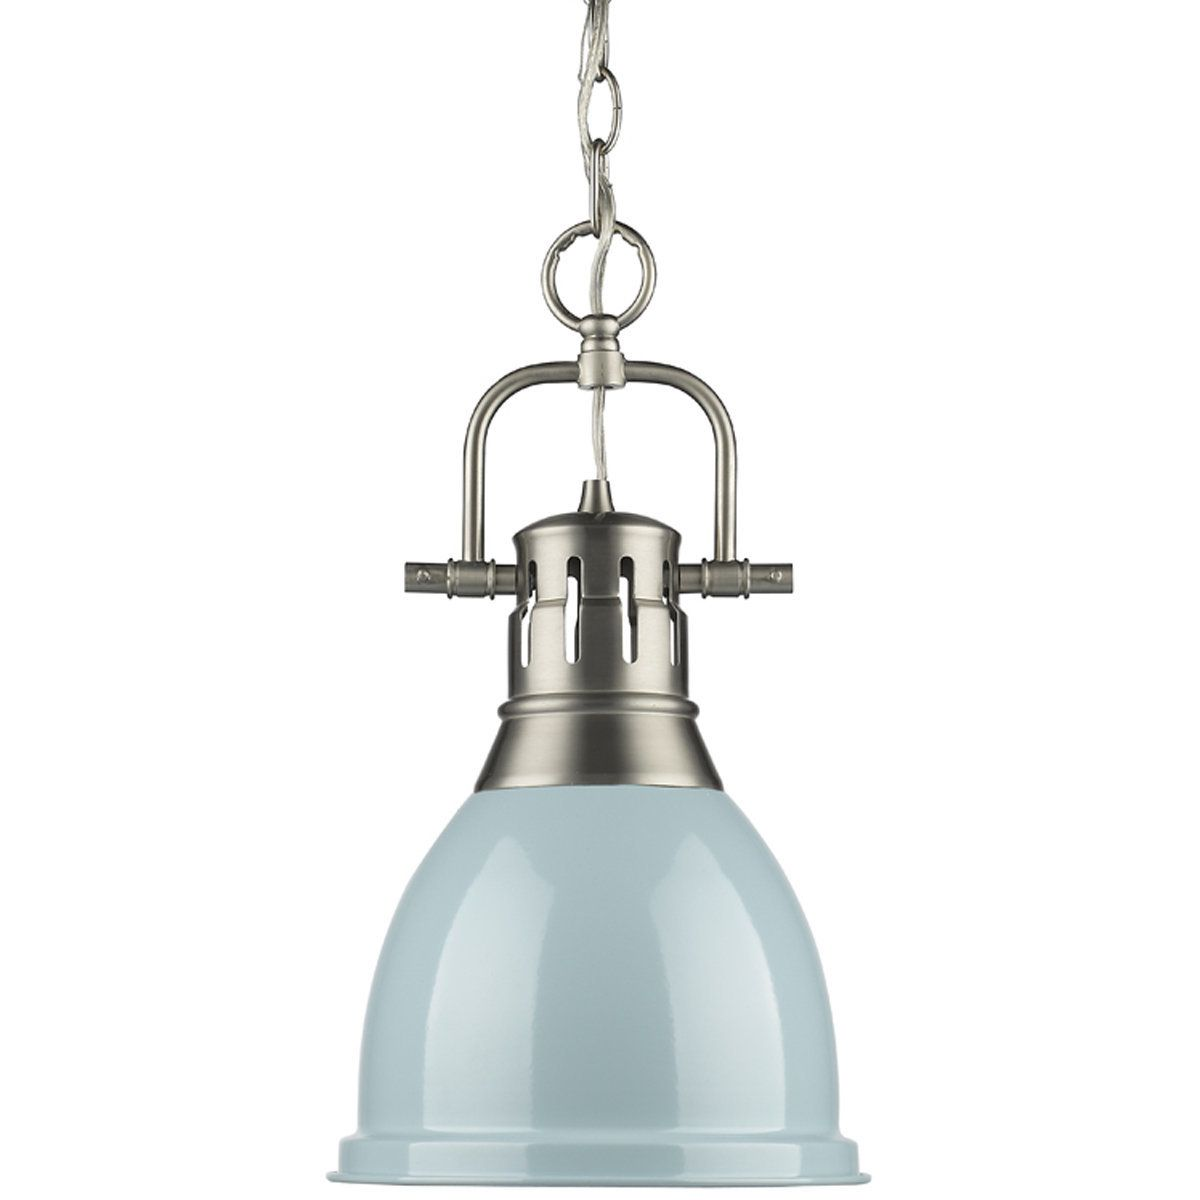 Golden Lighting 3602 M1l Ch Ch Duncan Mini Pendant With Chain In Chrome With A Chrome Shade Mini Pendant Lights